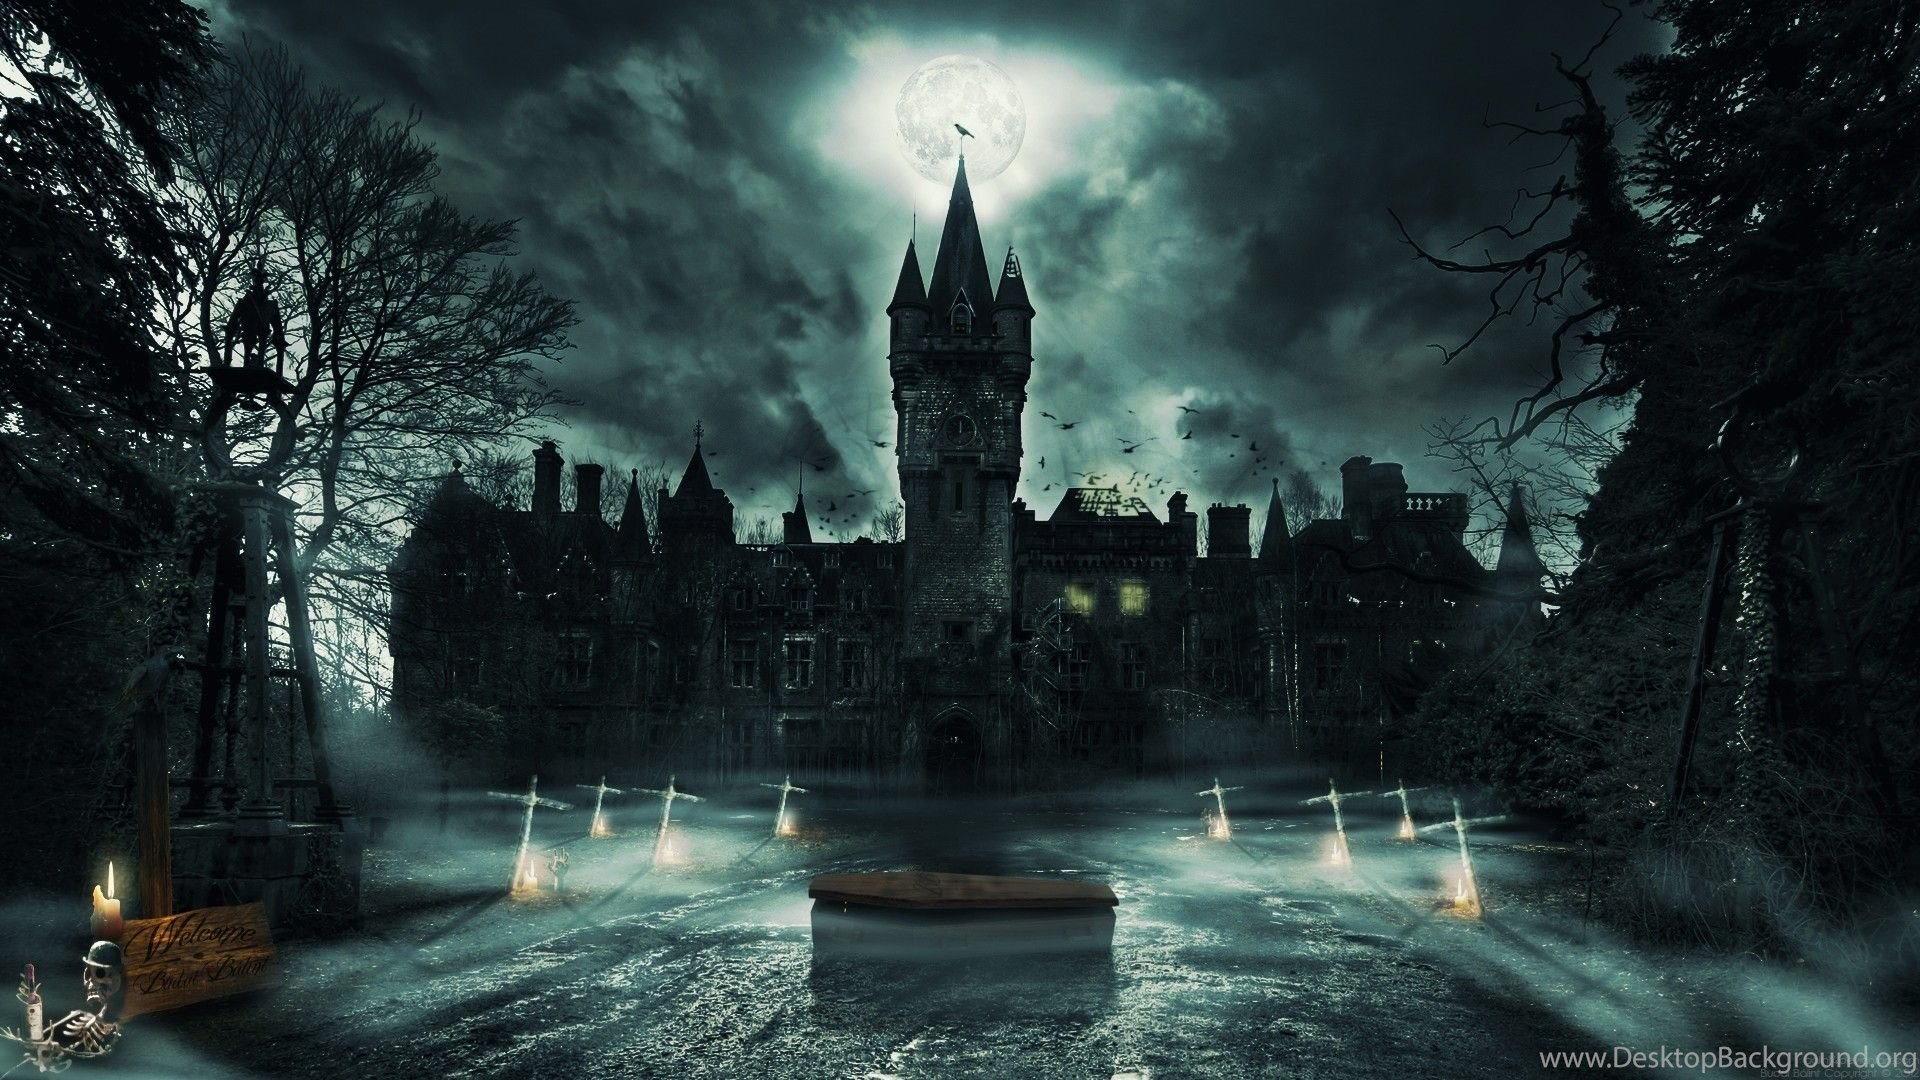 S Hd Image Wallpaper: Vampire Castle Wallpapers HD Resolution Desktop Background